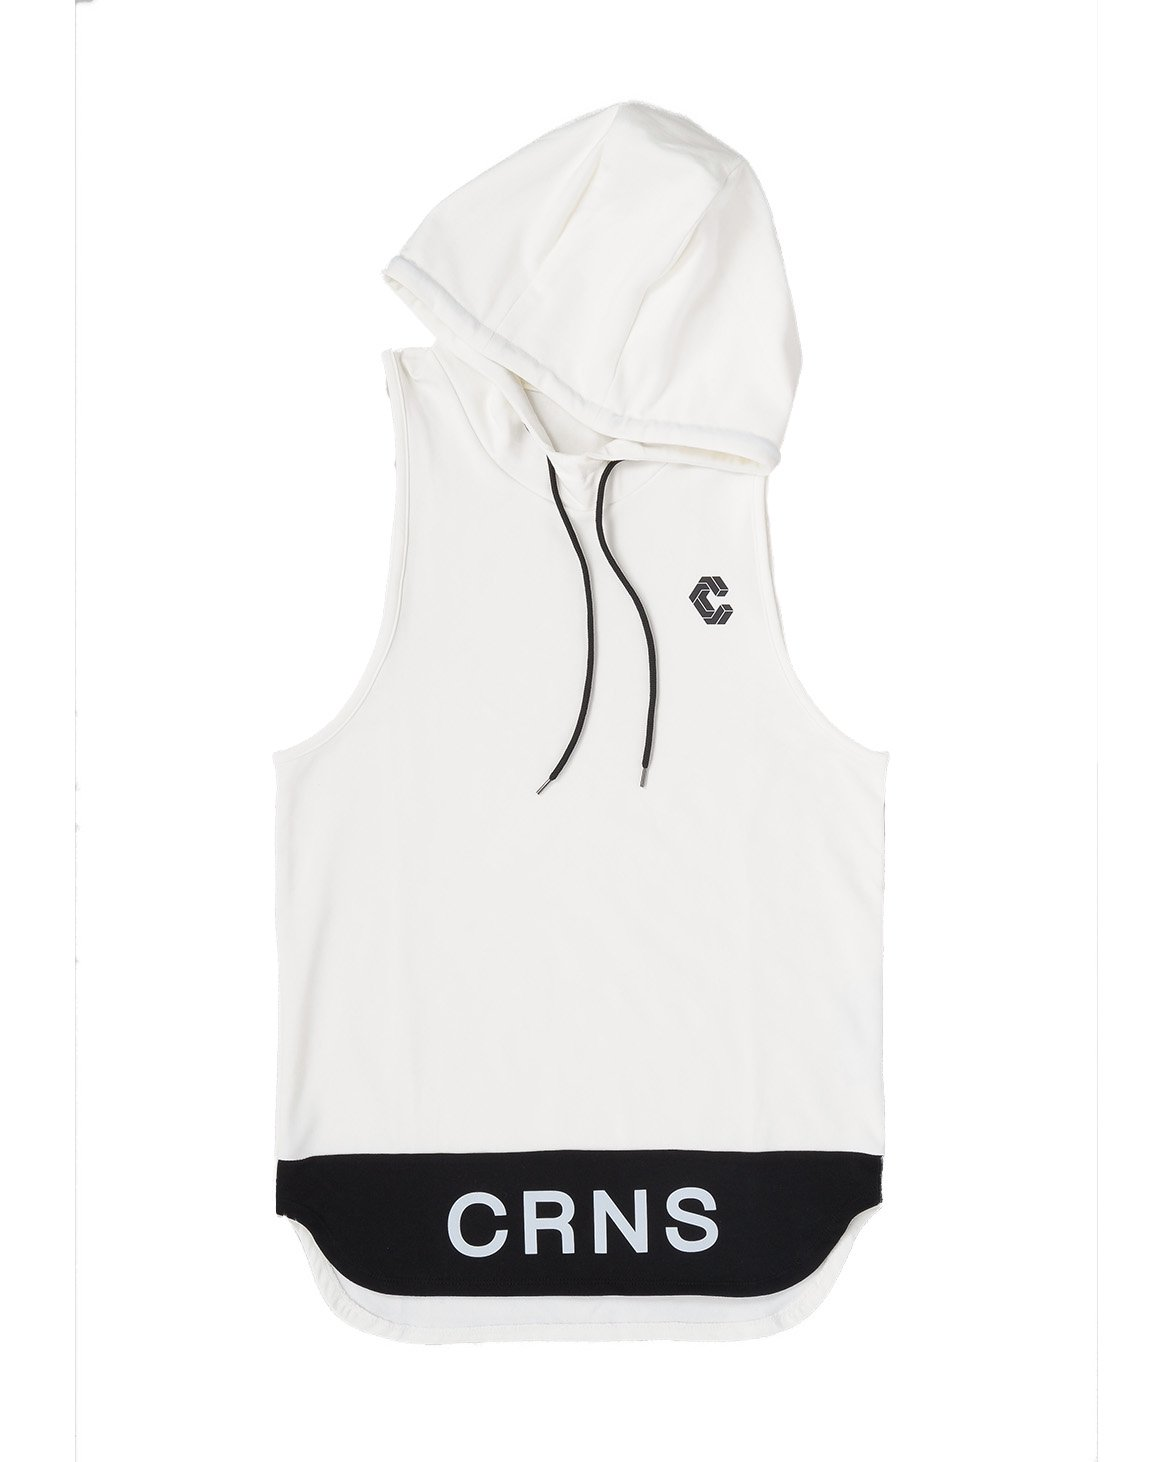 <img class='new_mark_img1' src='https://img.shop-pro.jp/img/new/icons1.gif' style='border:none;display:inline;margin:0px;padding:0px;width:auto;' />CRONOS BI-COLOR HOODY TANK TOP 【WHITE】